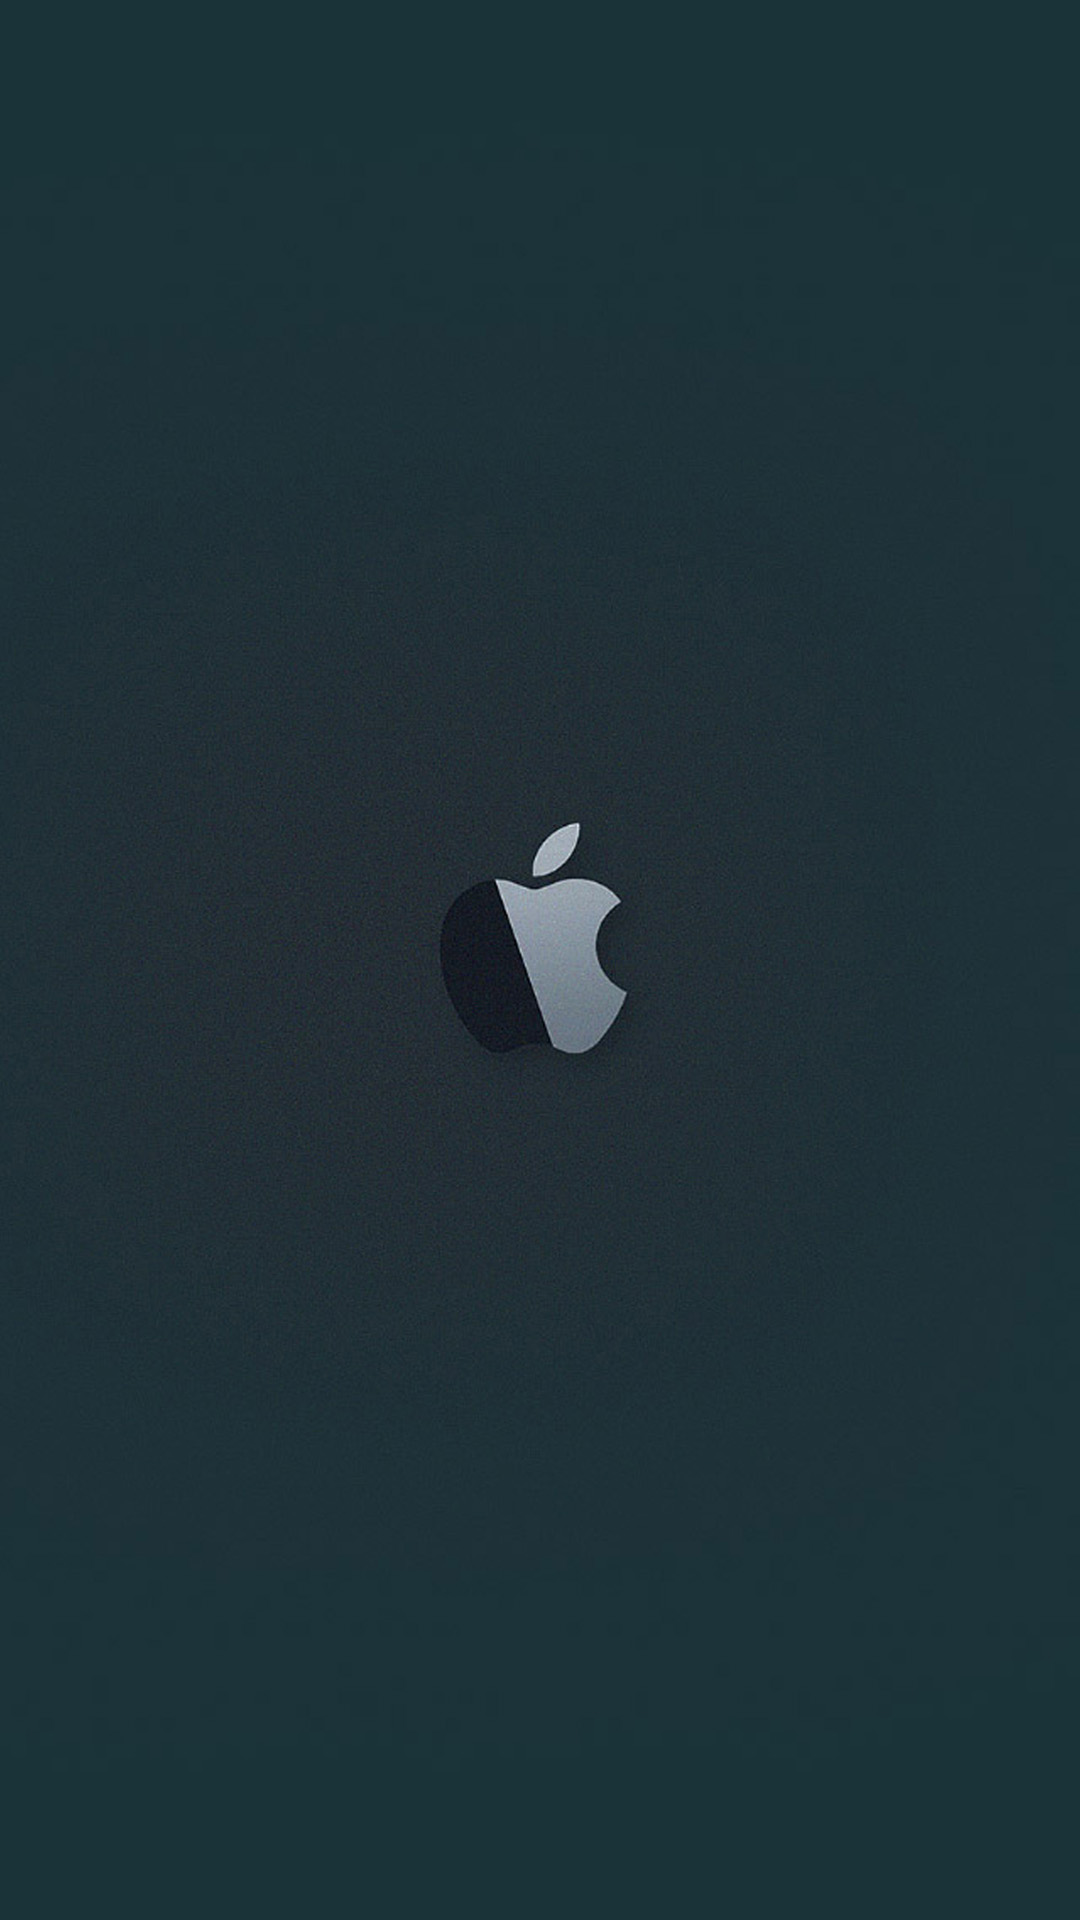 Apple Shiny Black Rear HD Wallpaper iPhone 6 plus wallpapersmobile 1080x1920